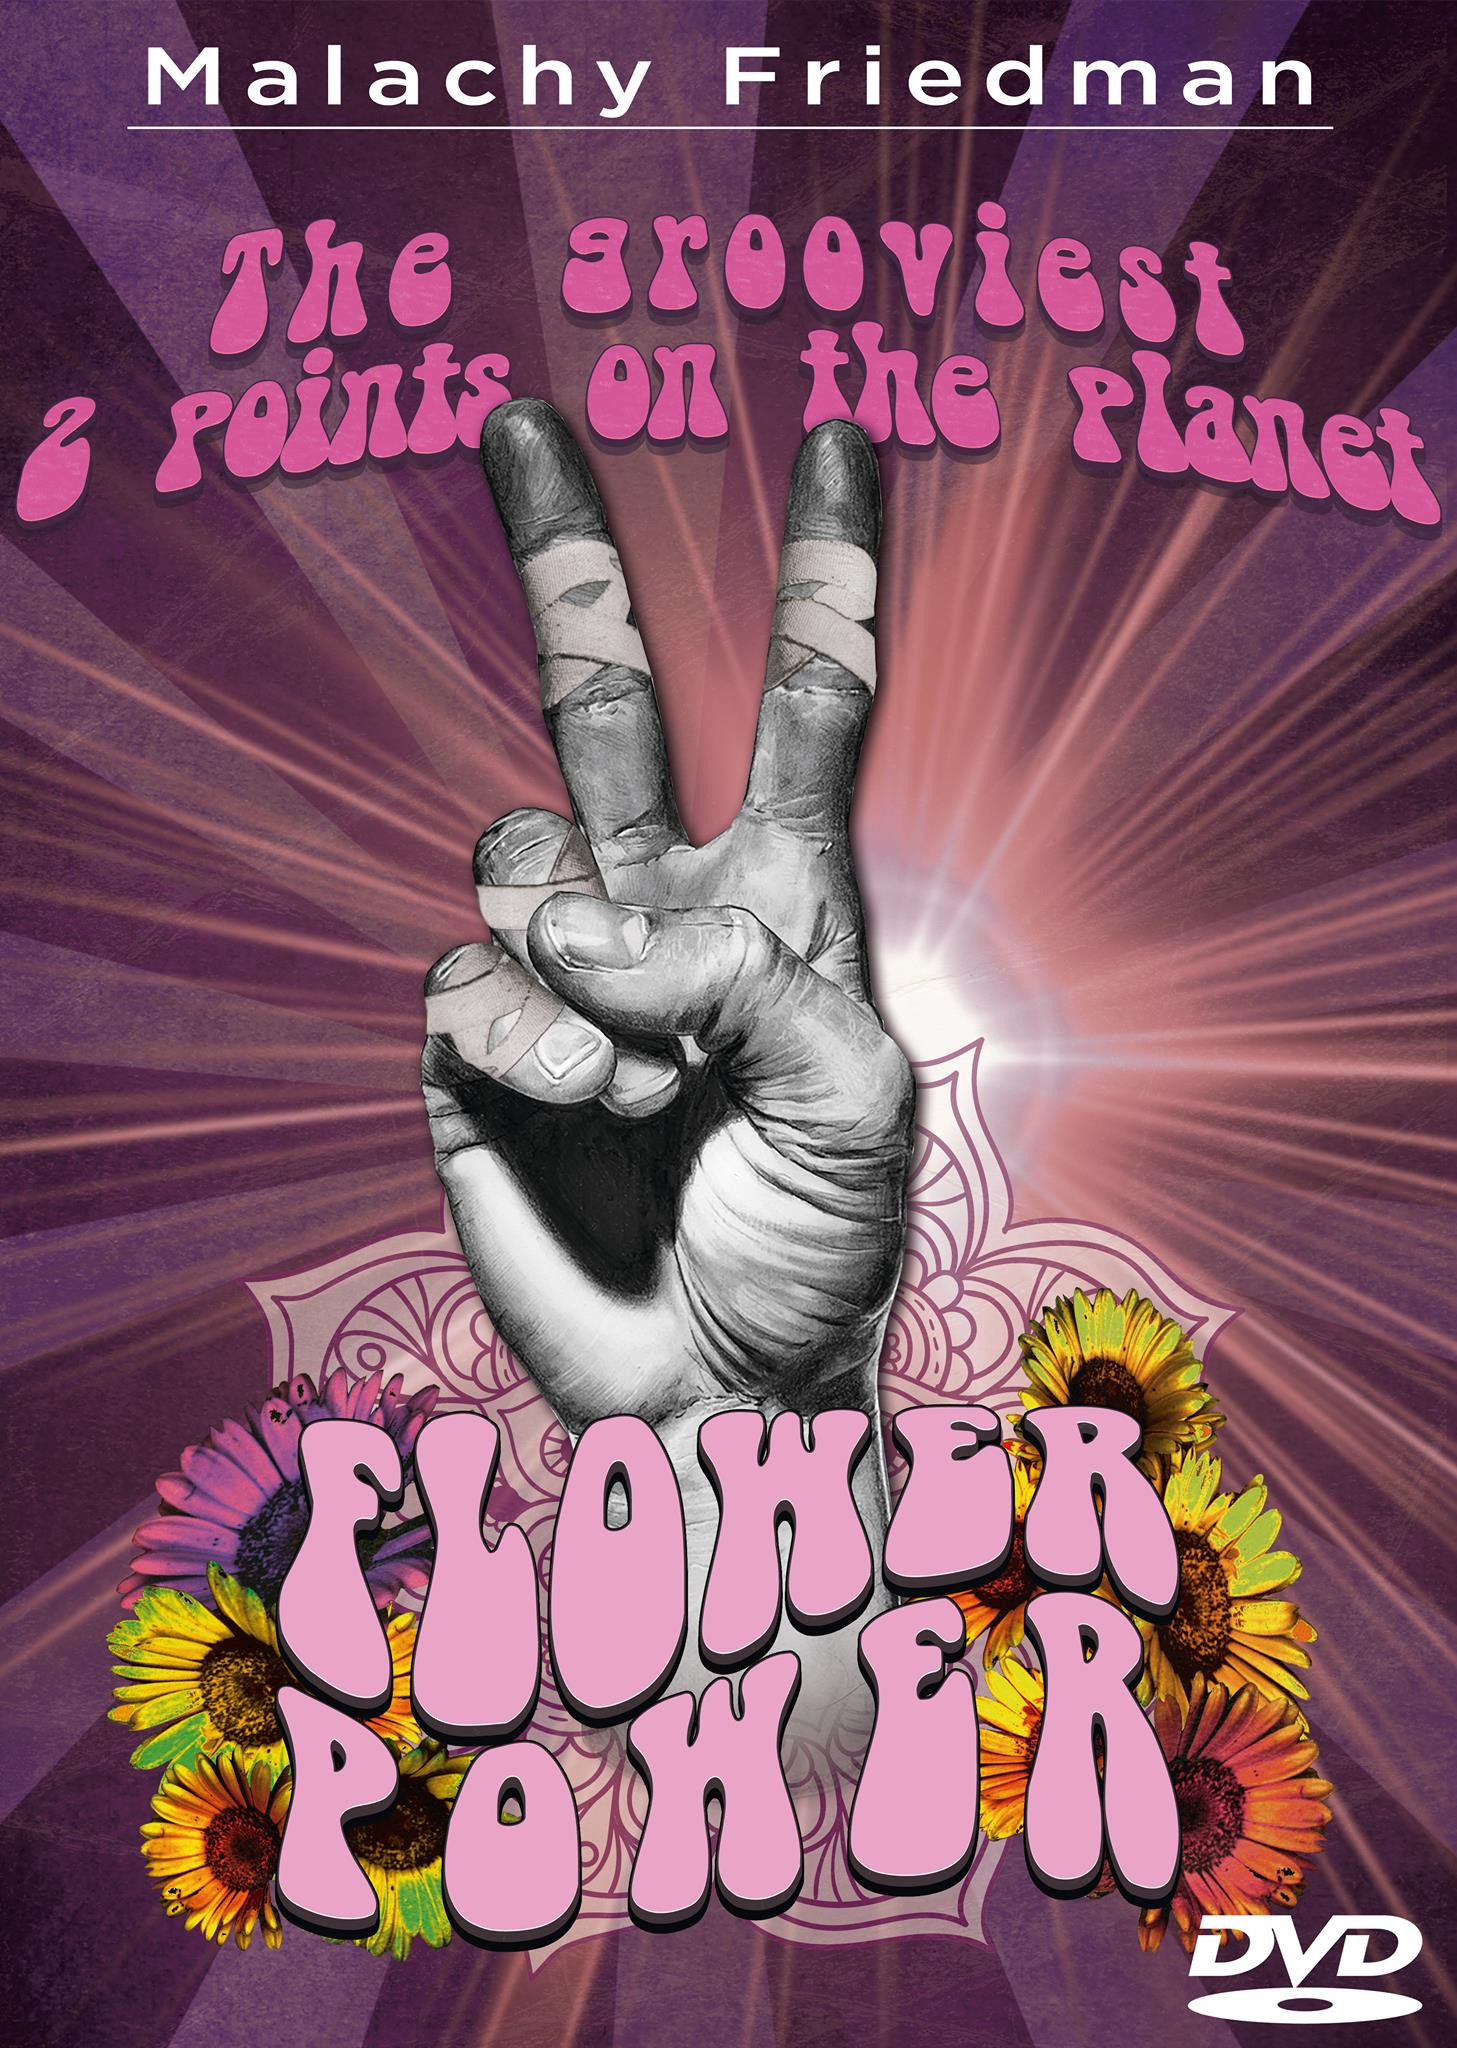 Flower Power Digital BJJ Instructional